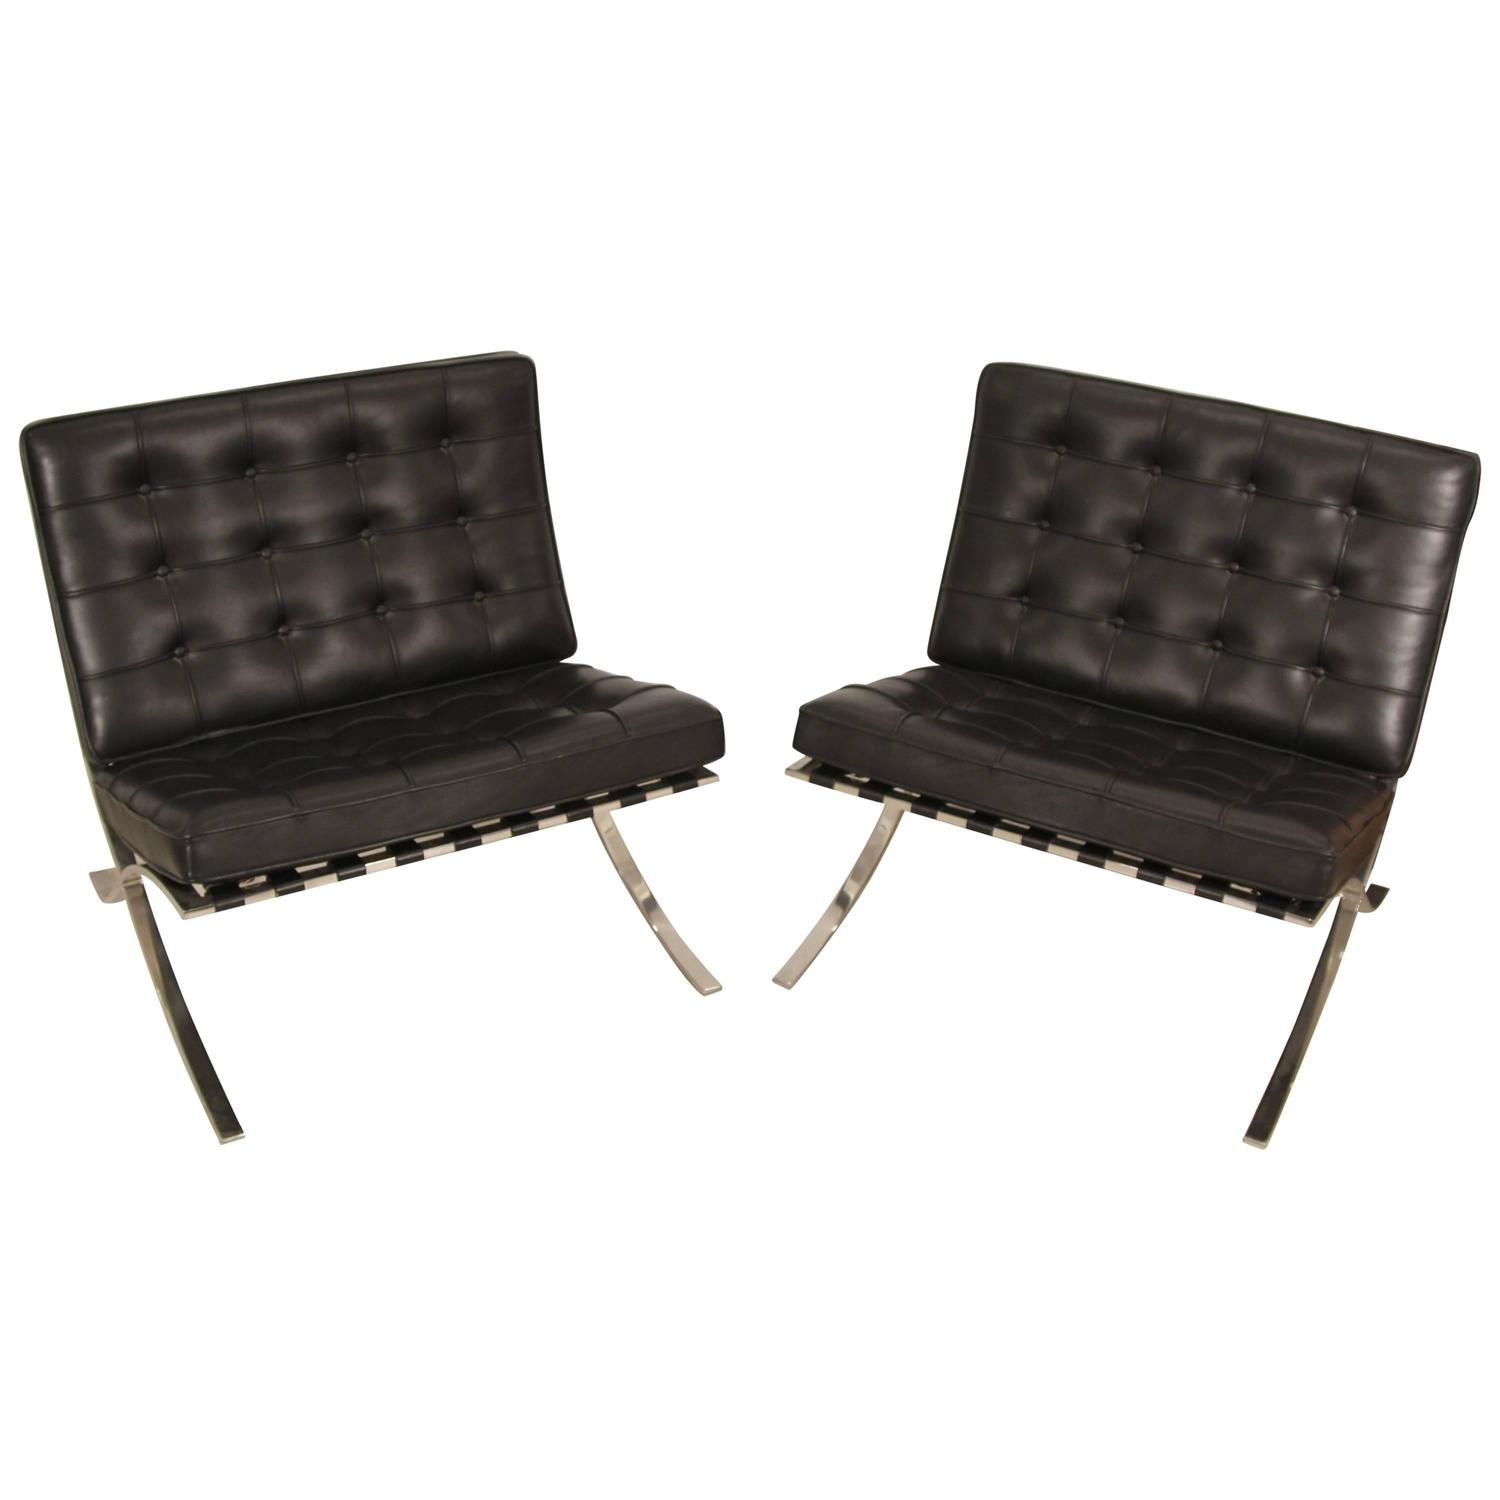 of mies van der rohe barcelona chairs for knoll for sale at 1stdibs